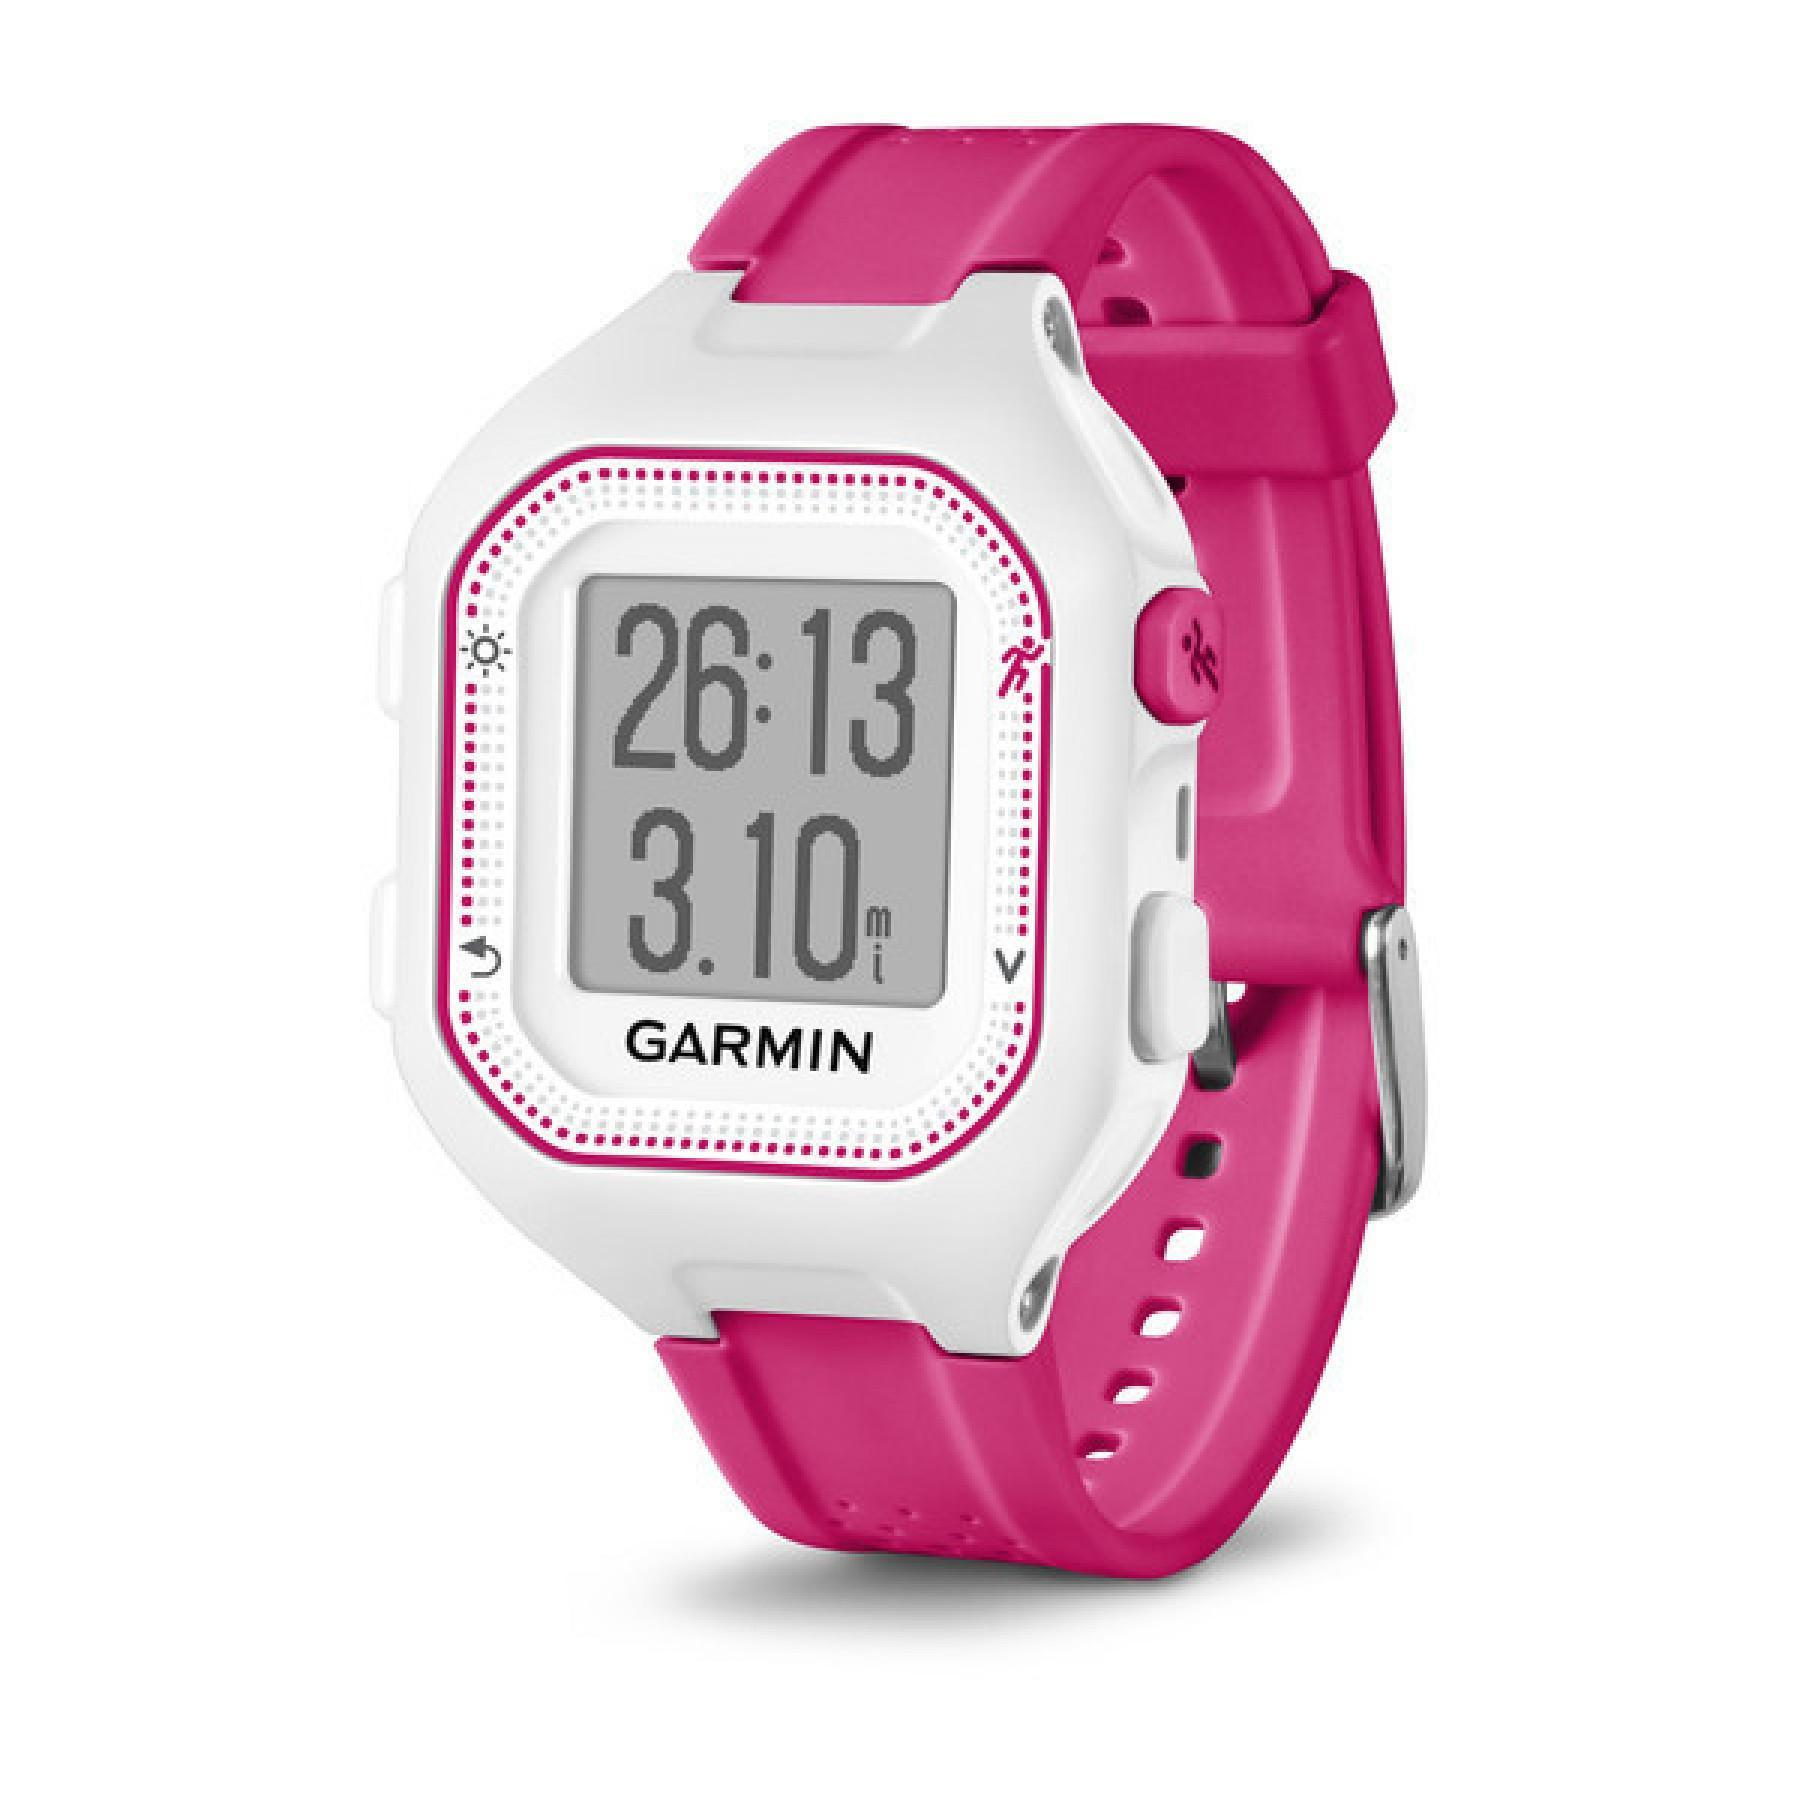 Wristwatch Garmin Forerunner 25